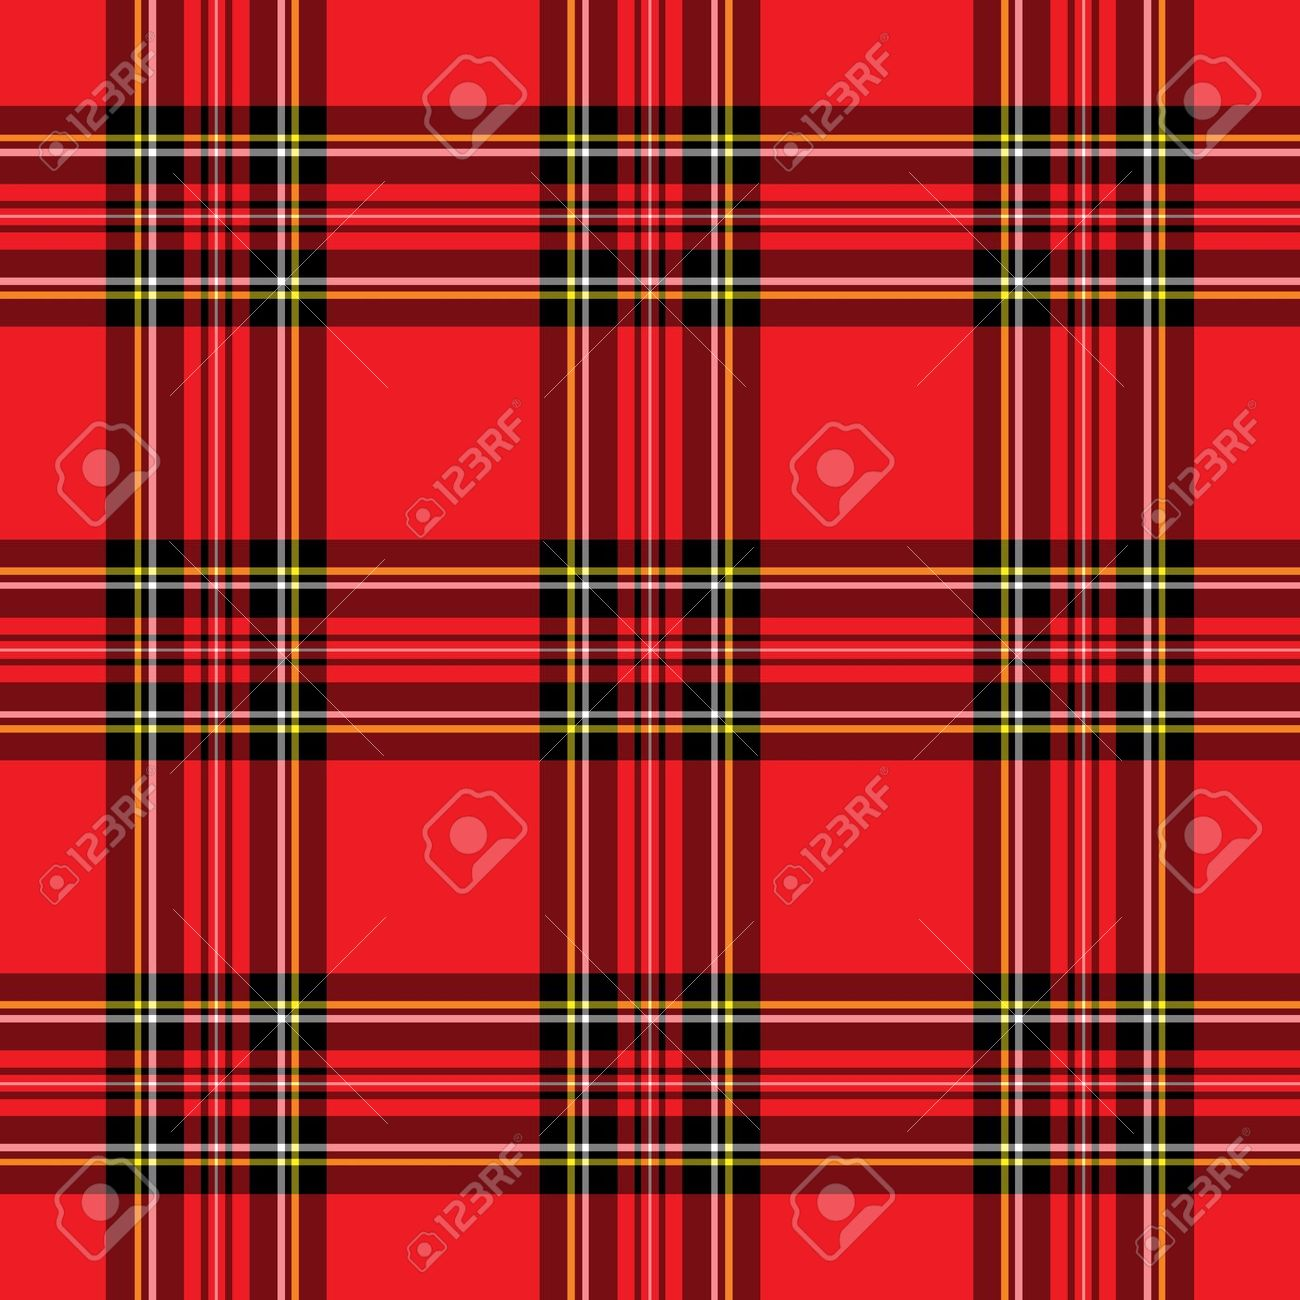 Background Illustration Of Red And Black Plaid Pattern Stock Photo.